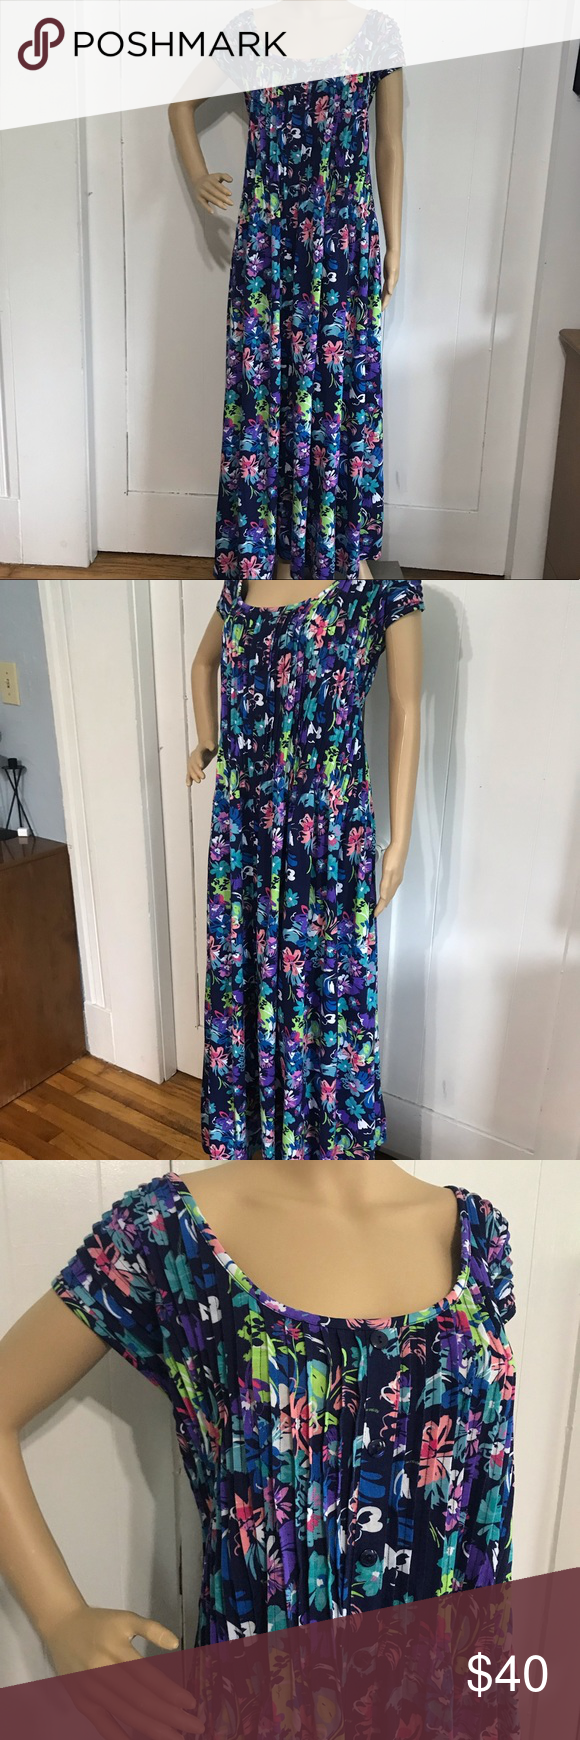 Woman Within Blue Floral Maxi Dress 5x Floral Maxi Dress Blue Floral Maxi Dress Floral Maxi [ 1740 x 580 Pixel ]